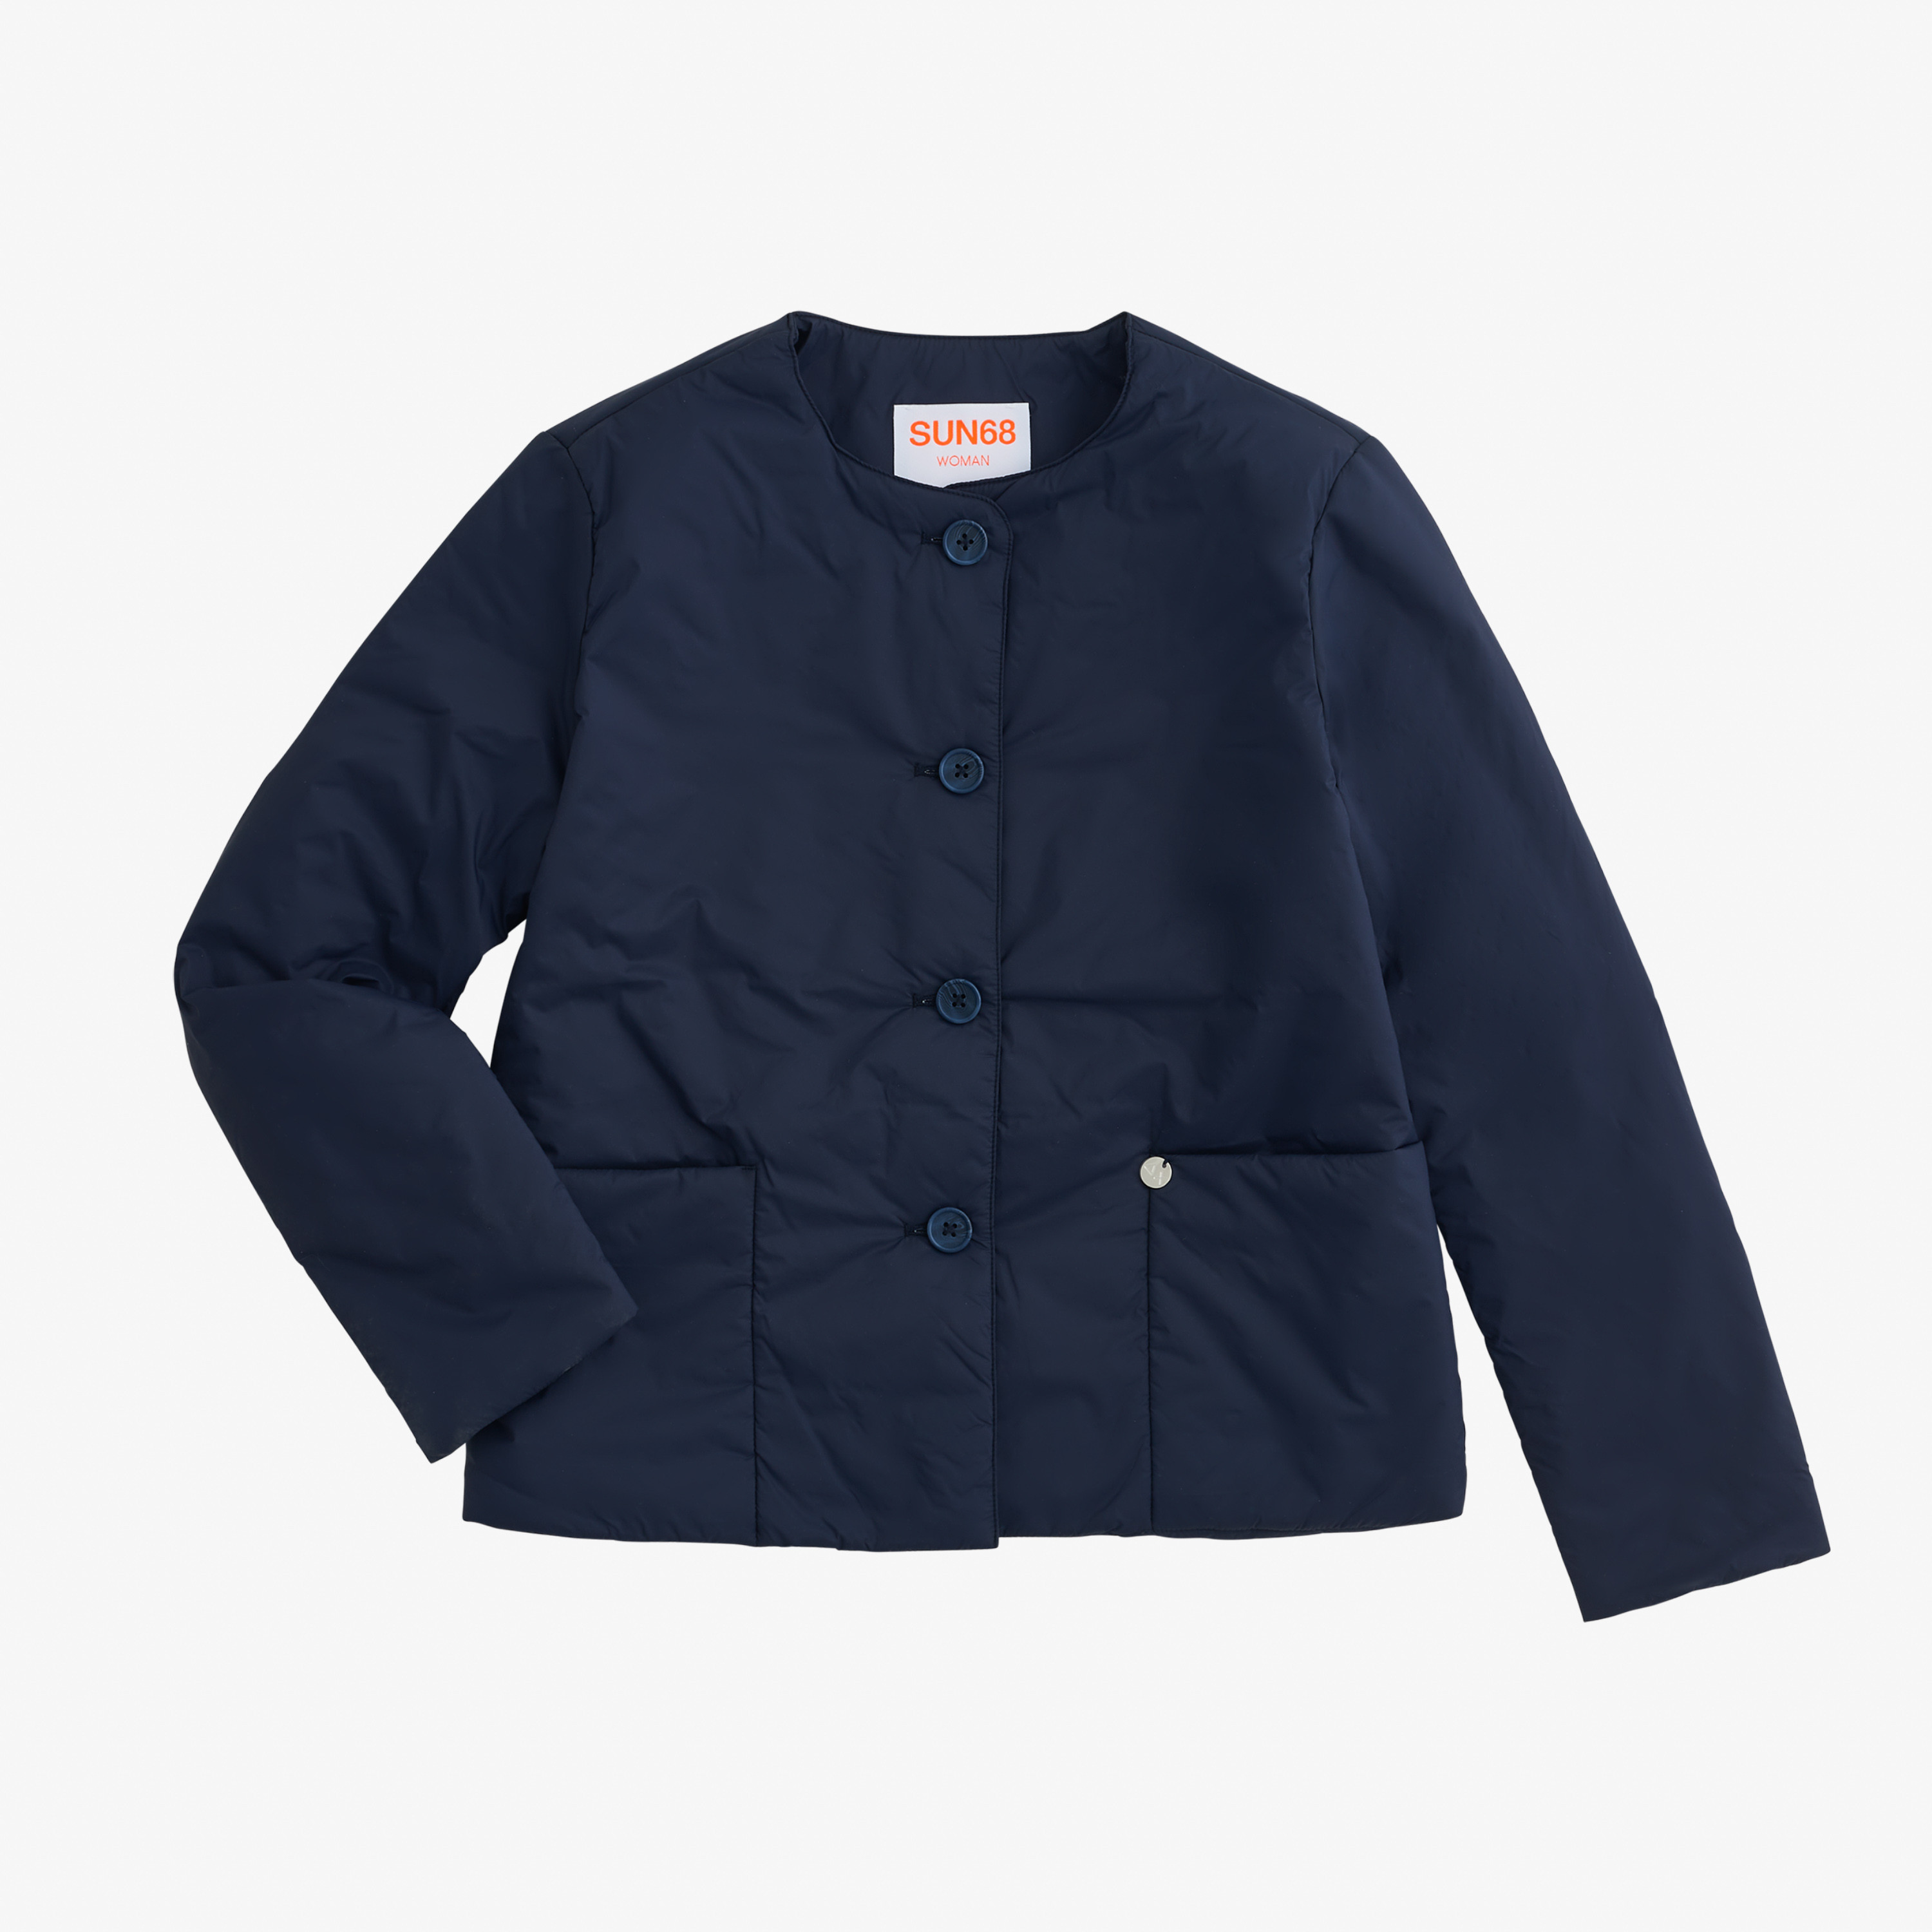 RAIN JACKET NAVY BLUE